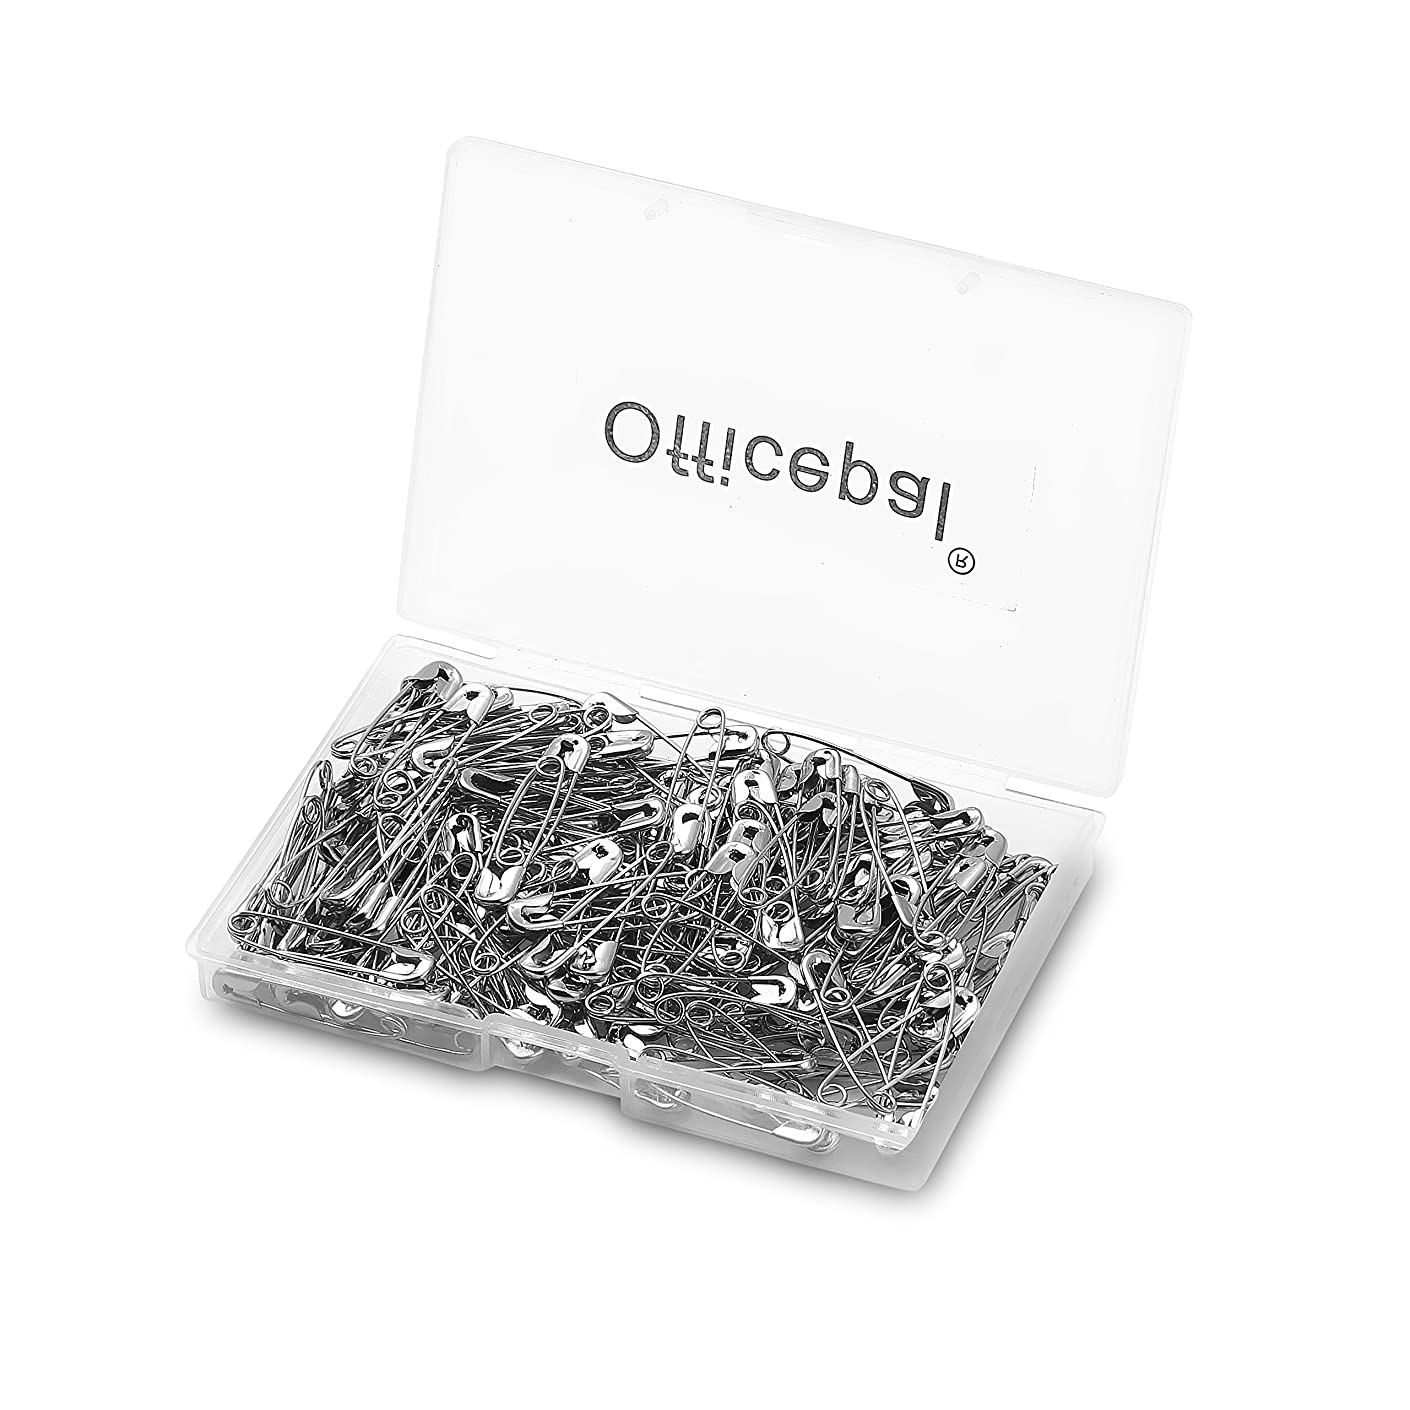 Officepal Premium 1.06 inches 27mm Quality Safety Pins- Top 600-Count – Durable, Rust-Resistant Nickel Plated Steel Set- Best Sewing Accessories Kit for Baby Clothing, Crafts and Arts